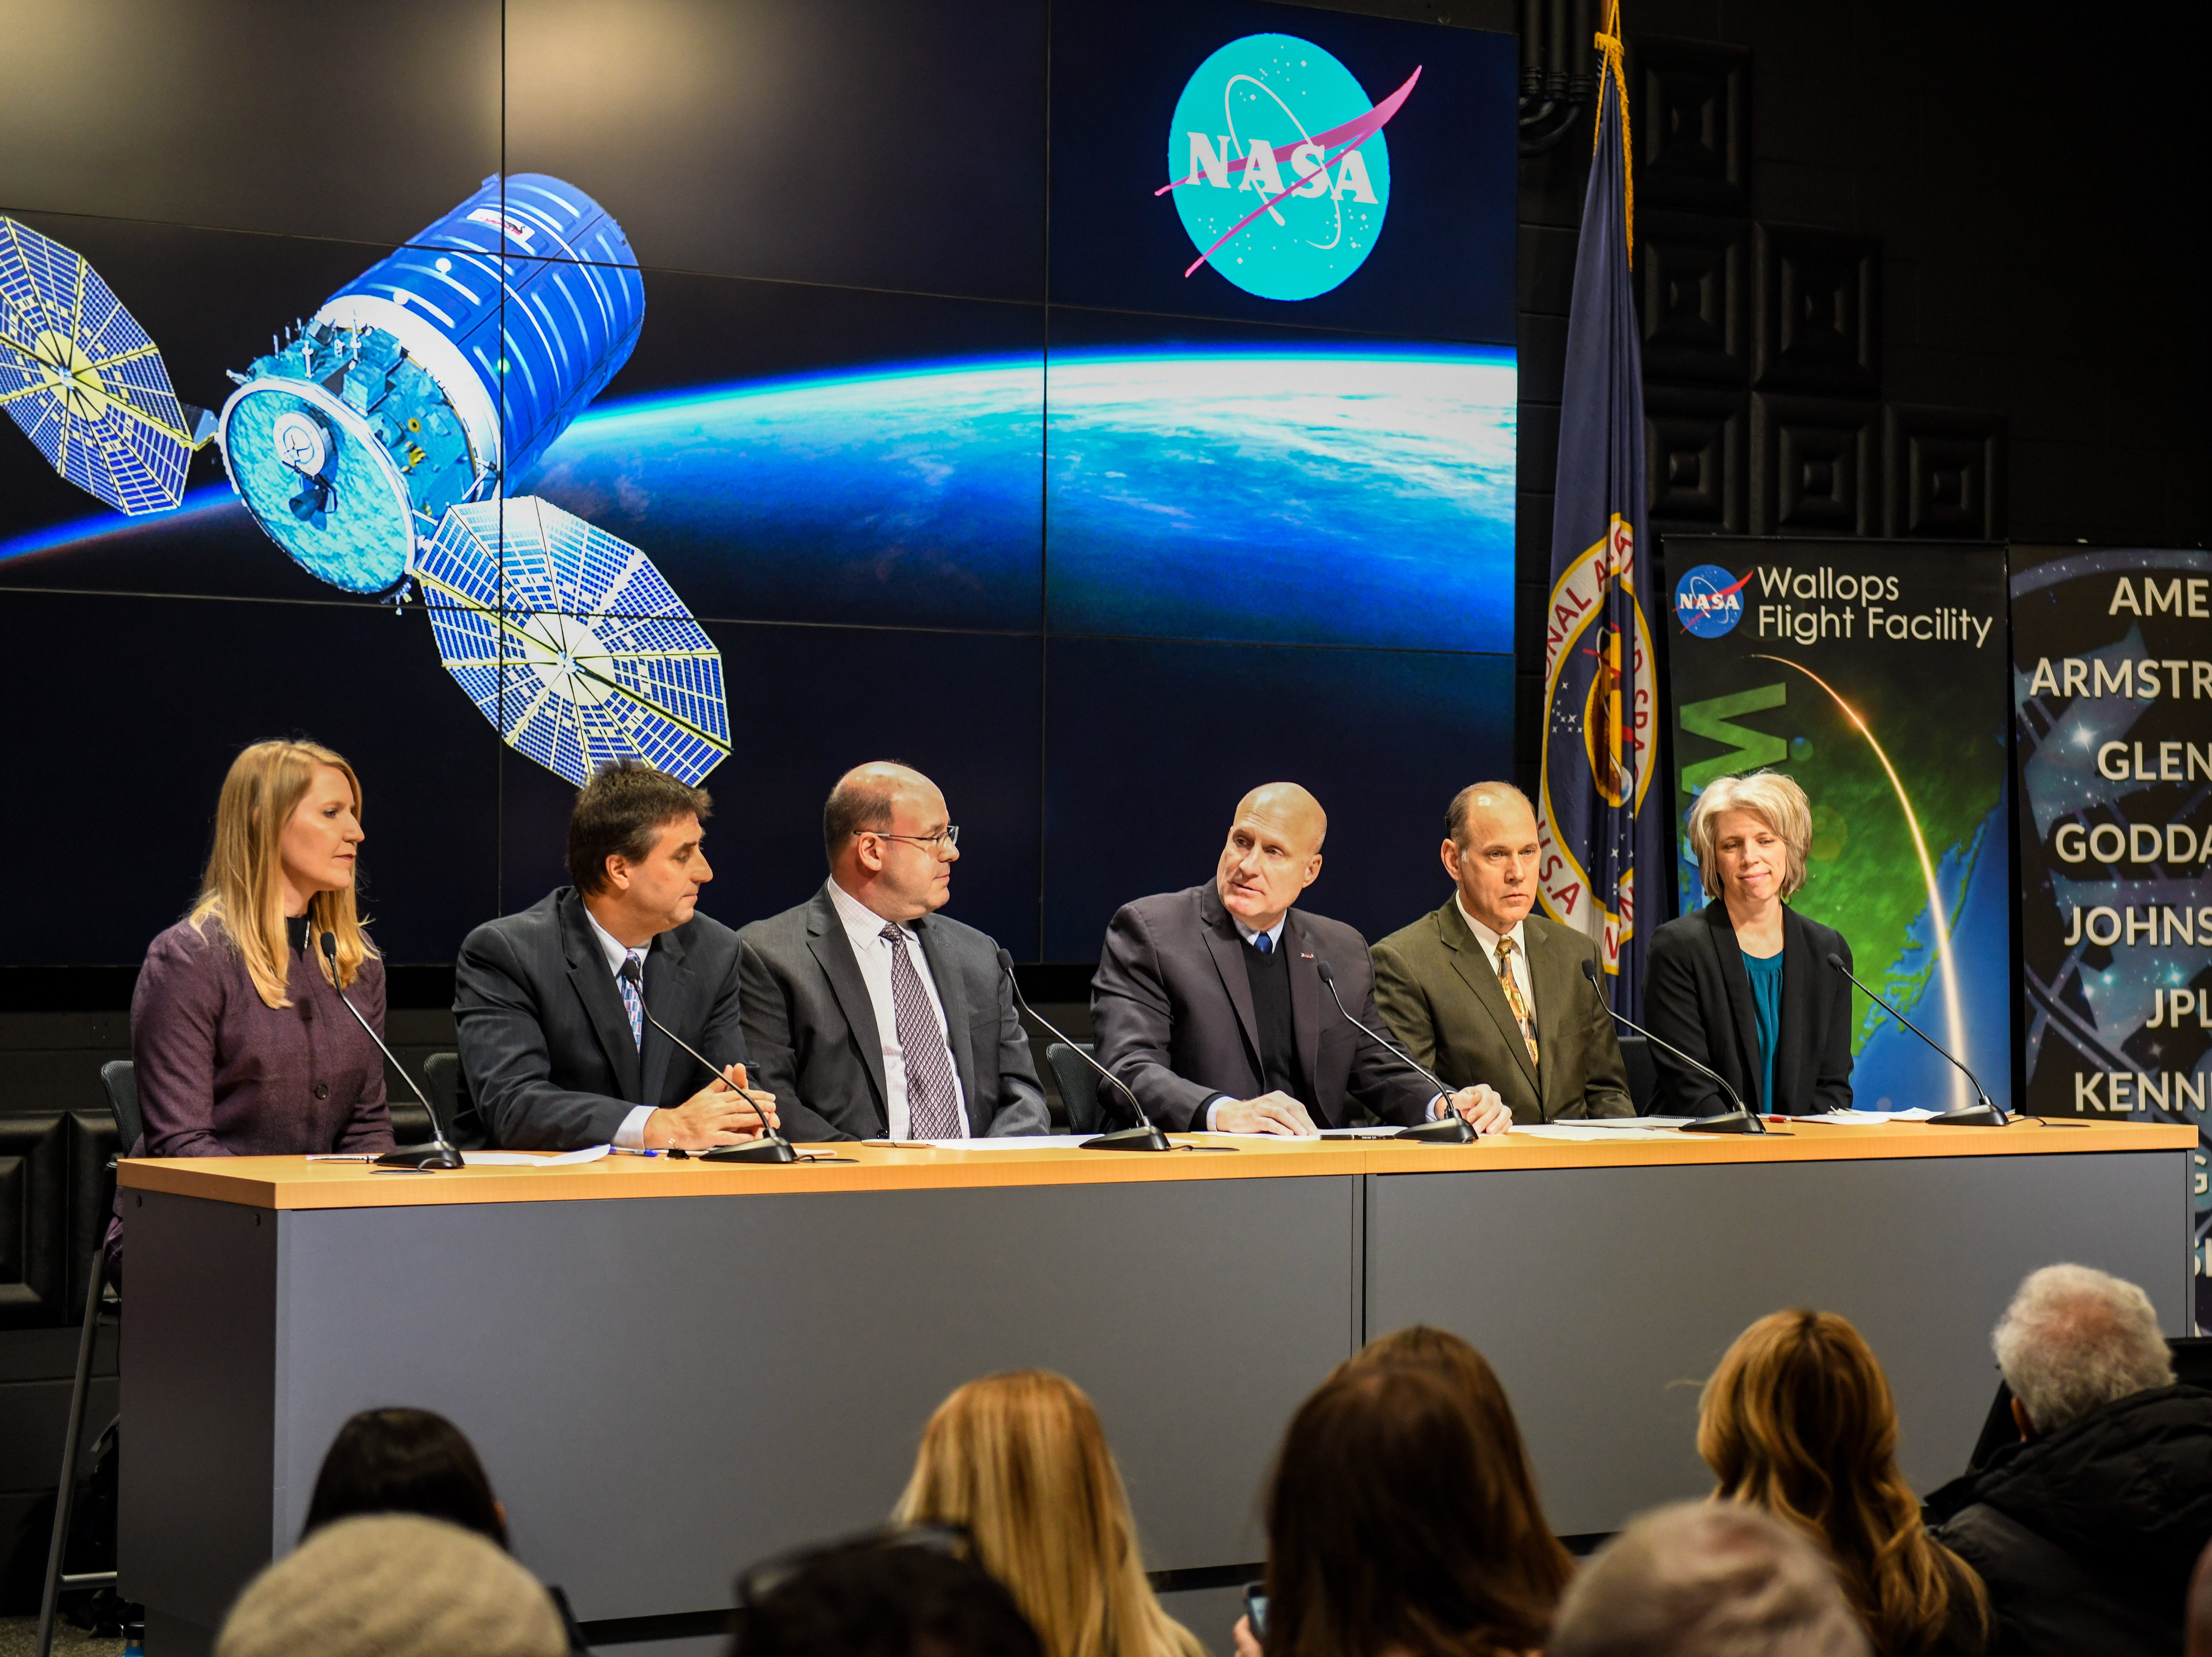 Leaders discuss the upcoming rocket launch in a press conference at NASA's Mid-Atlantic Regional Spaceport in Wallops Island, Virginia on Wednesday, Nov 14, 2018.